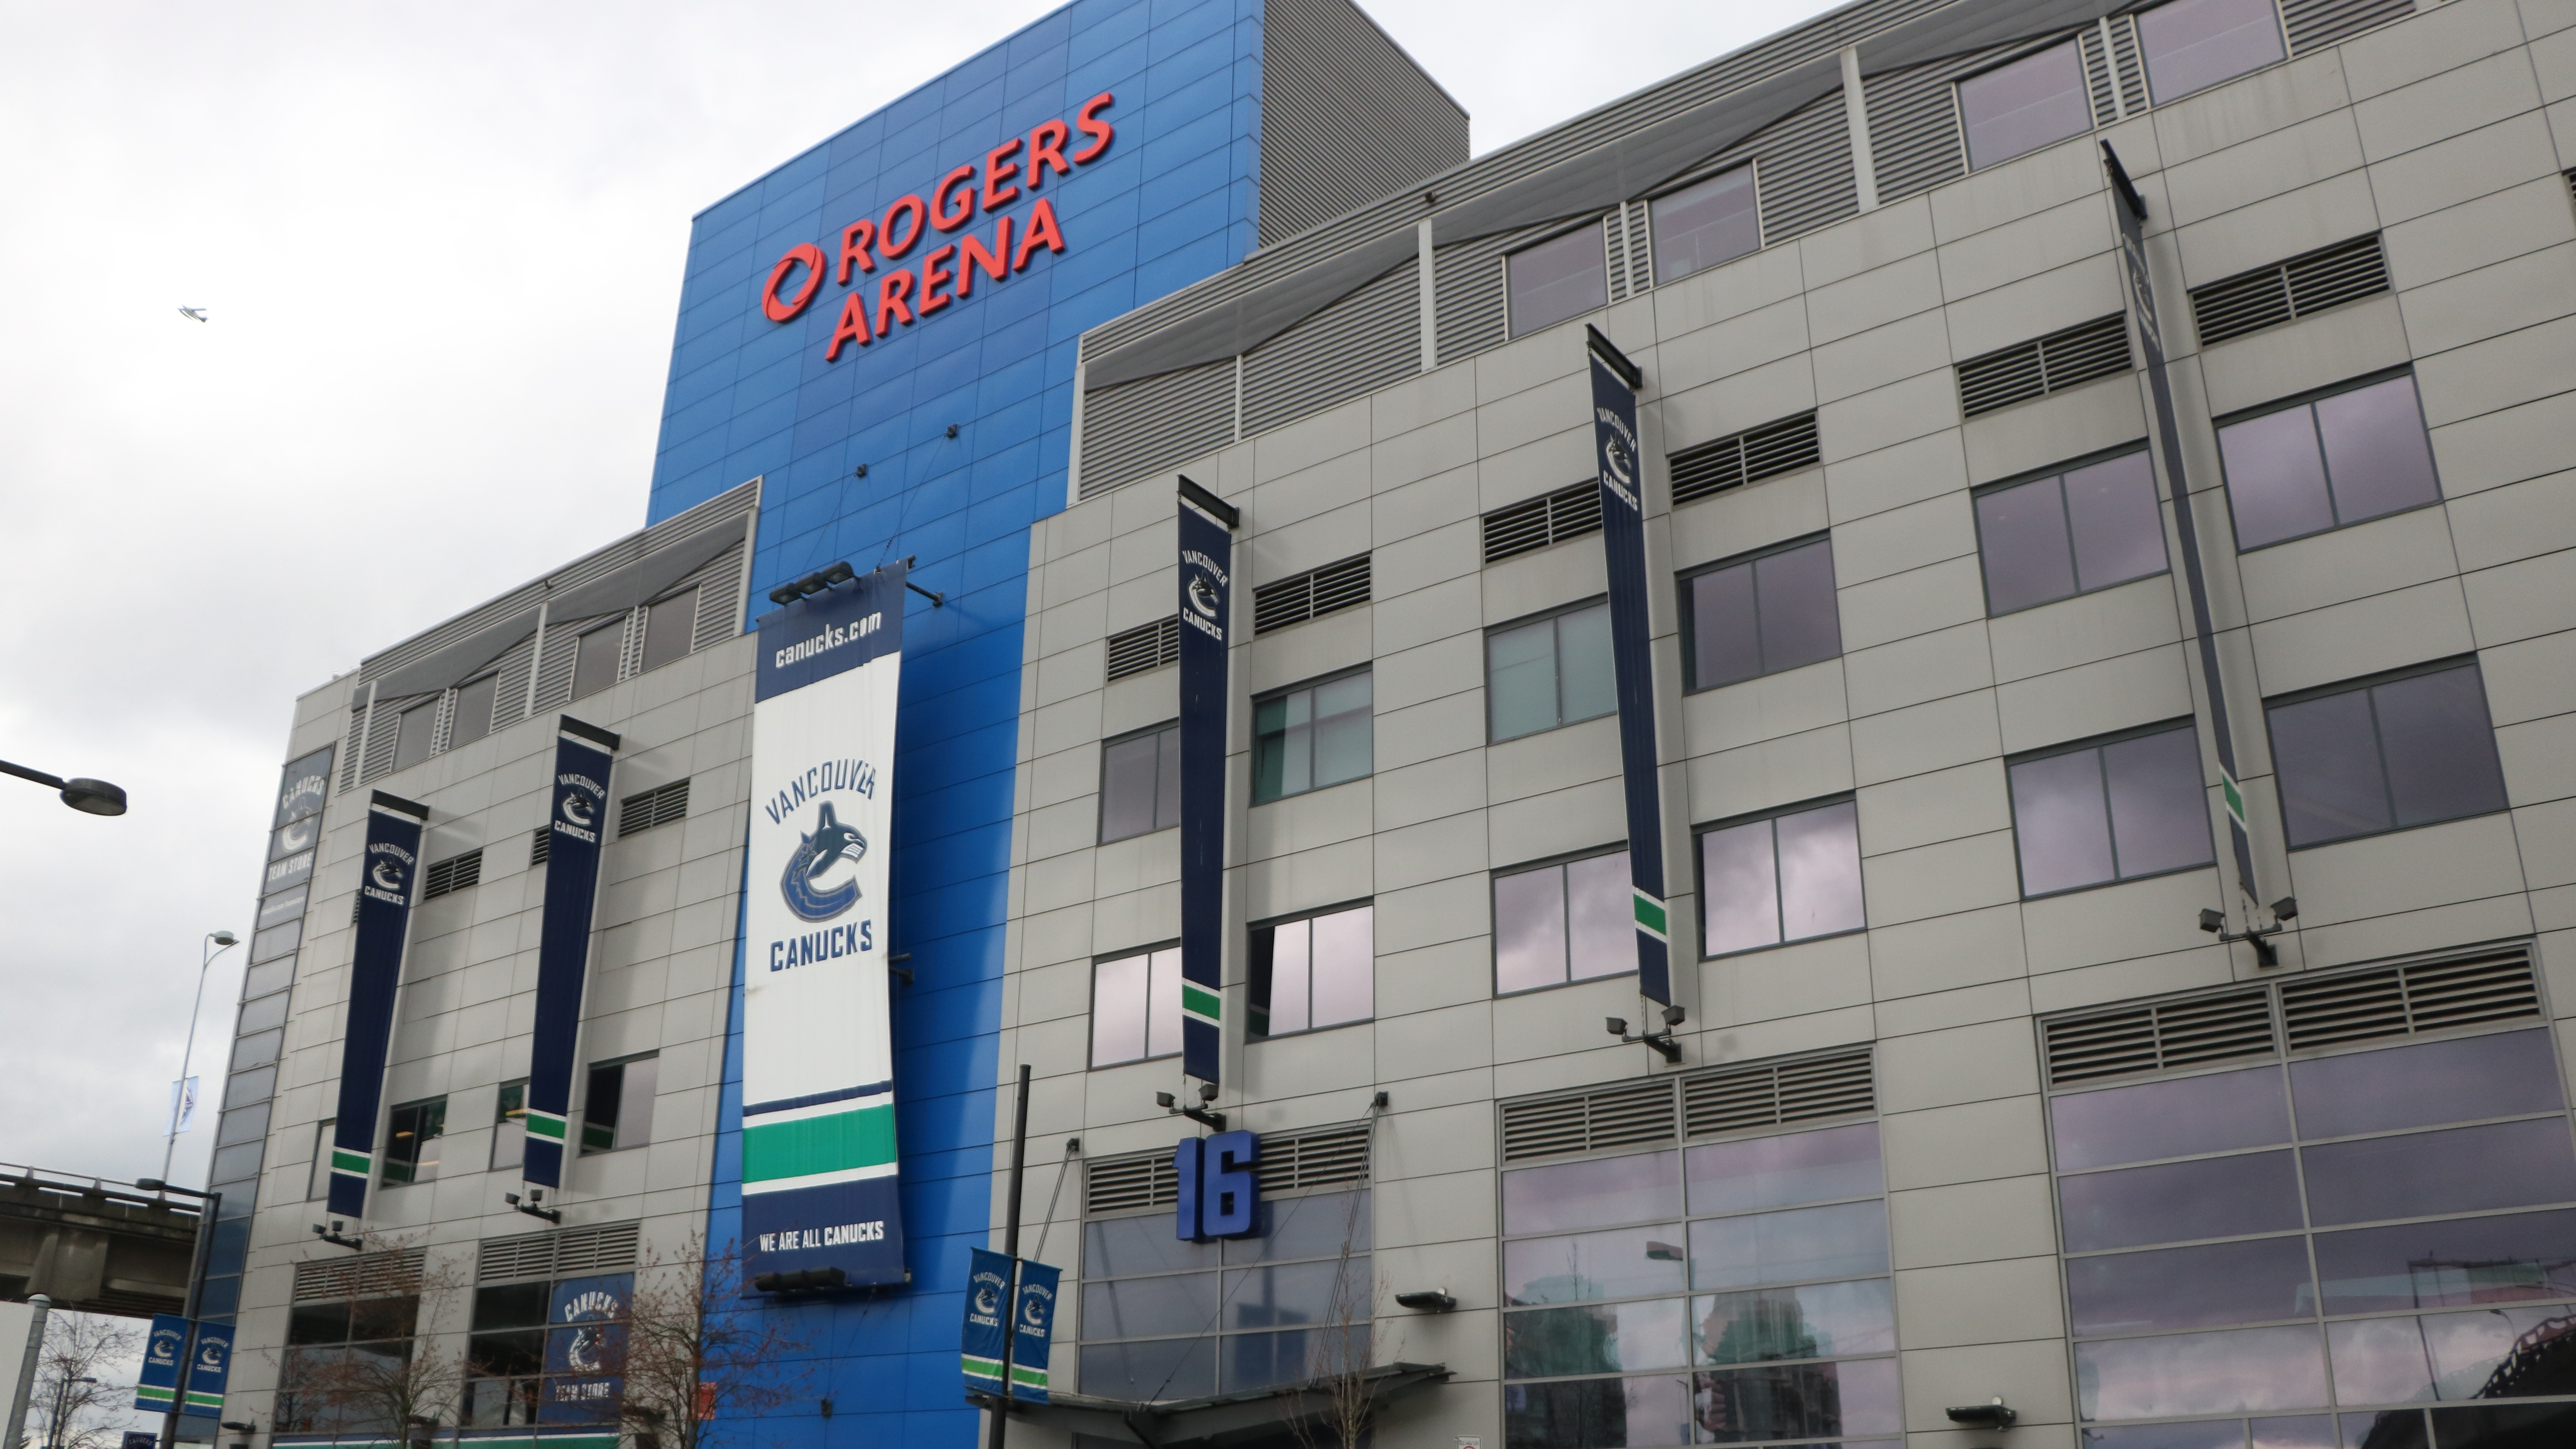 New security changes for Canucks home games